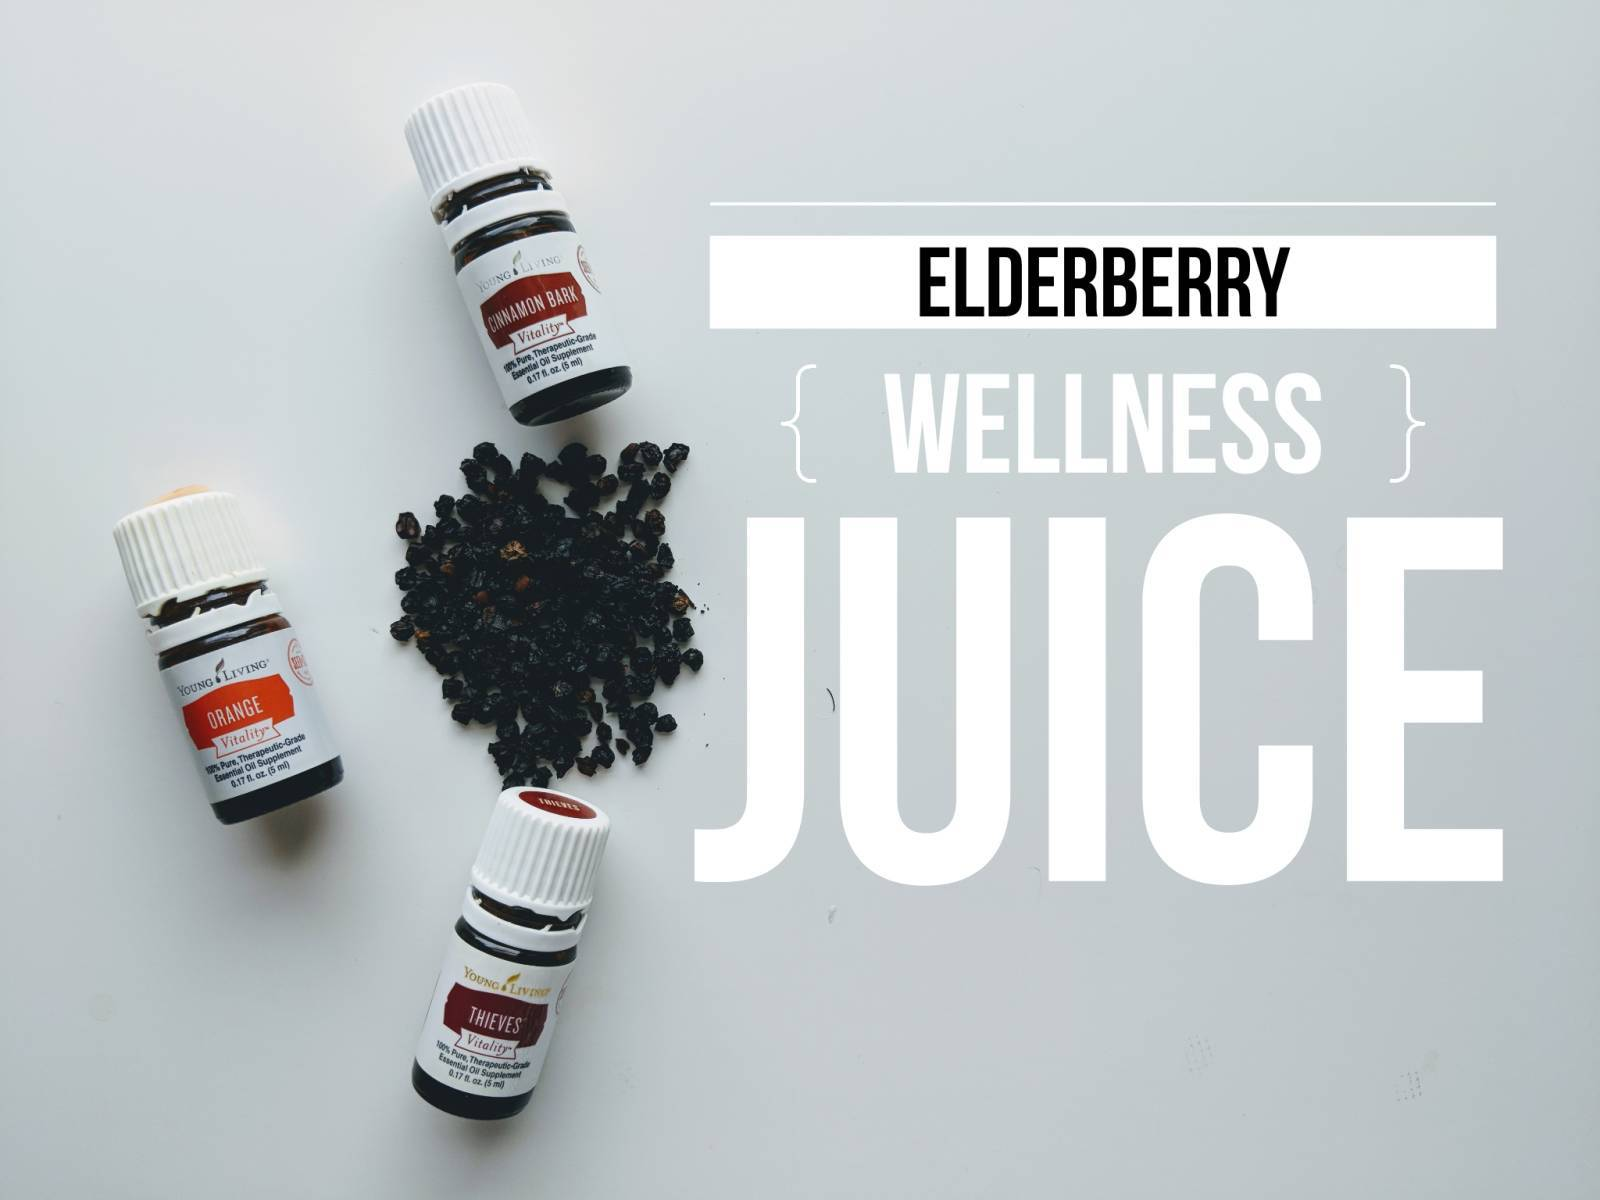 Elderberry Wellness Juice